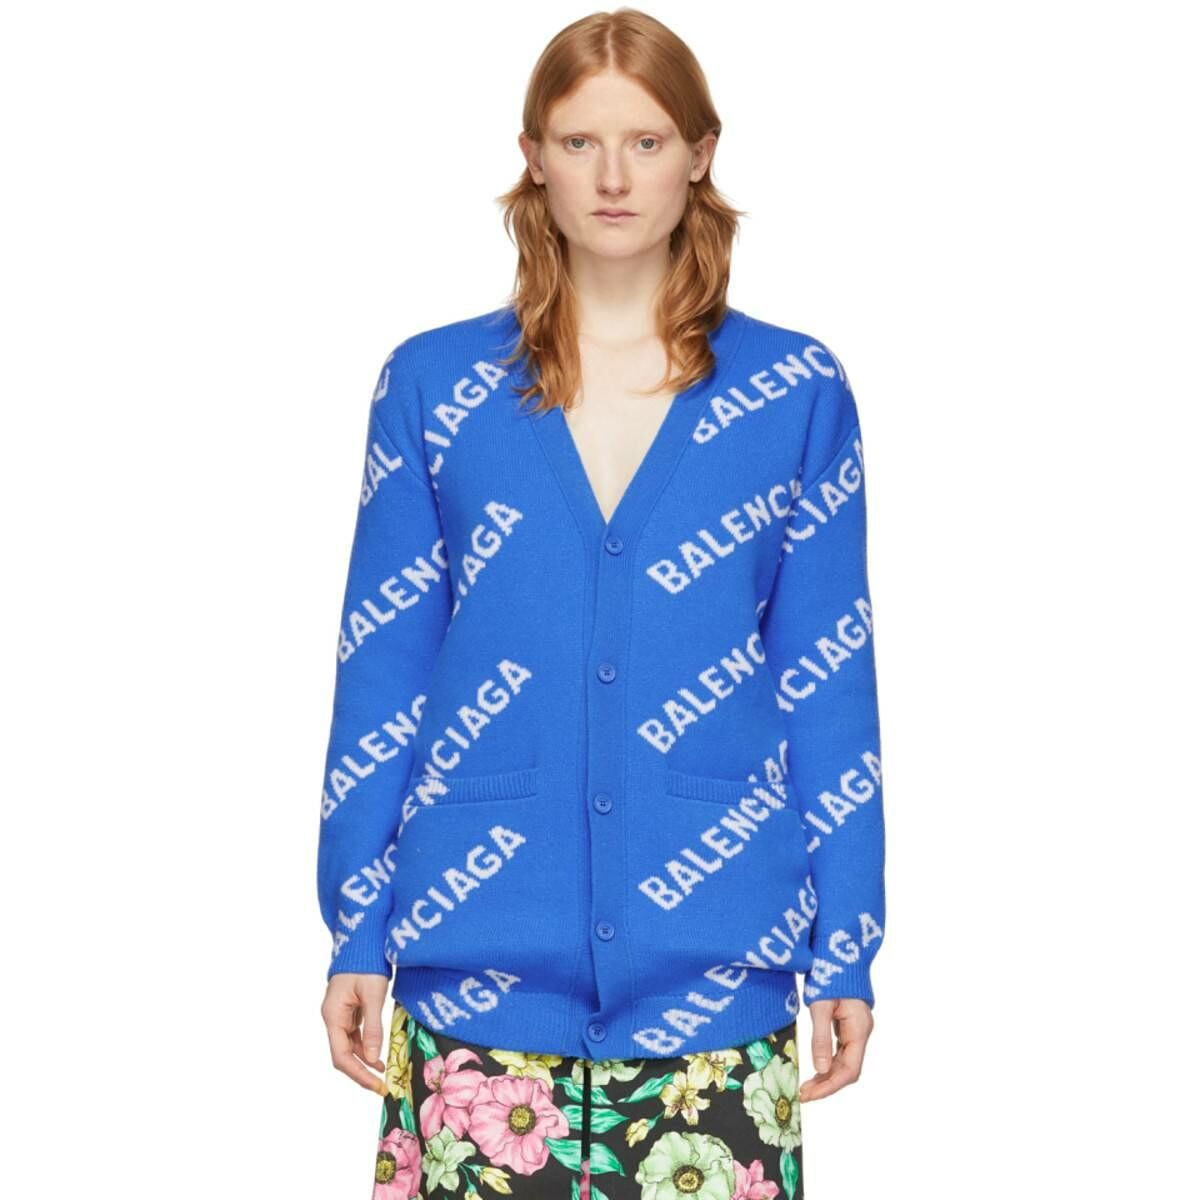 Balenciaga Blue and White All Over Logo Cardigan Ssense USA WOMEN Women FASHION Womens KNITWEAR